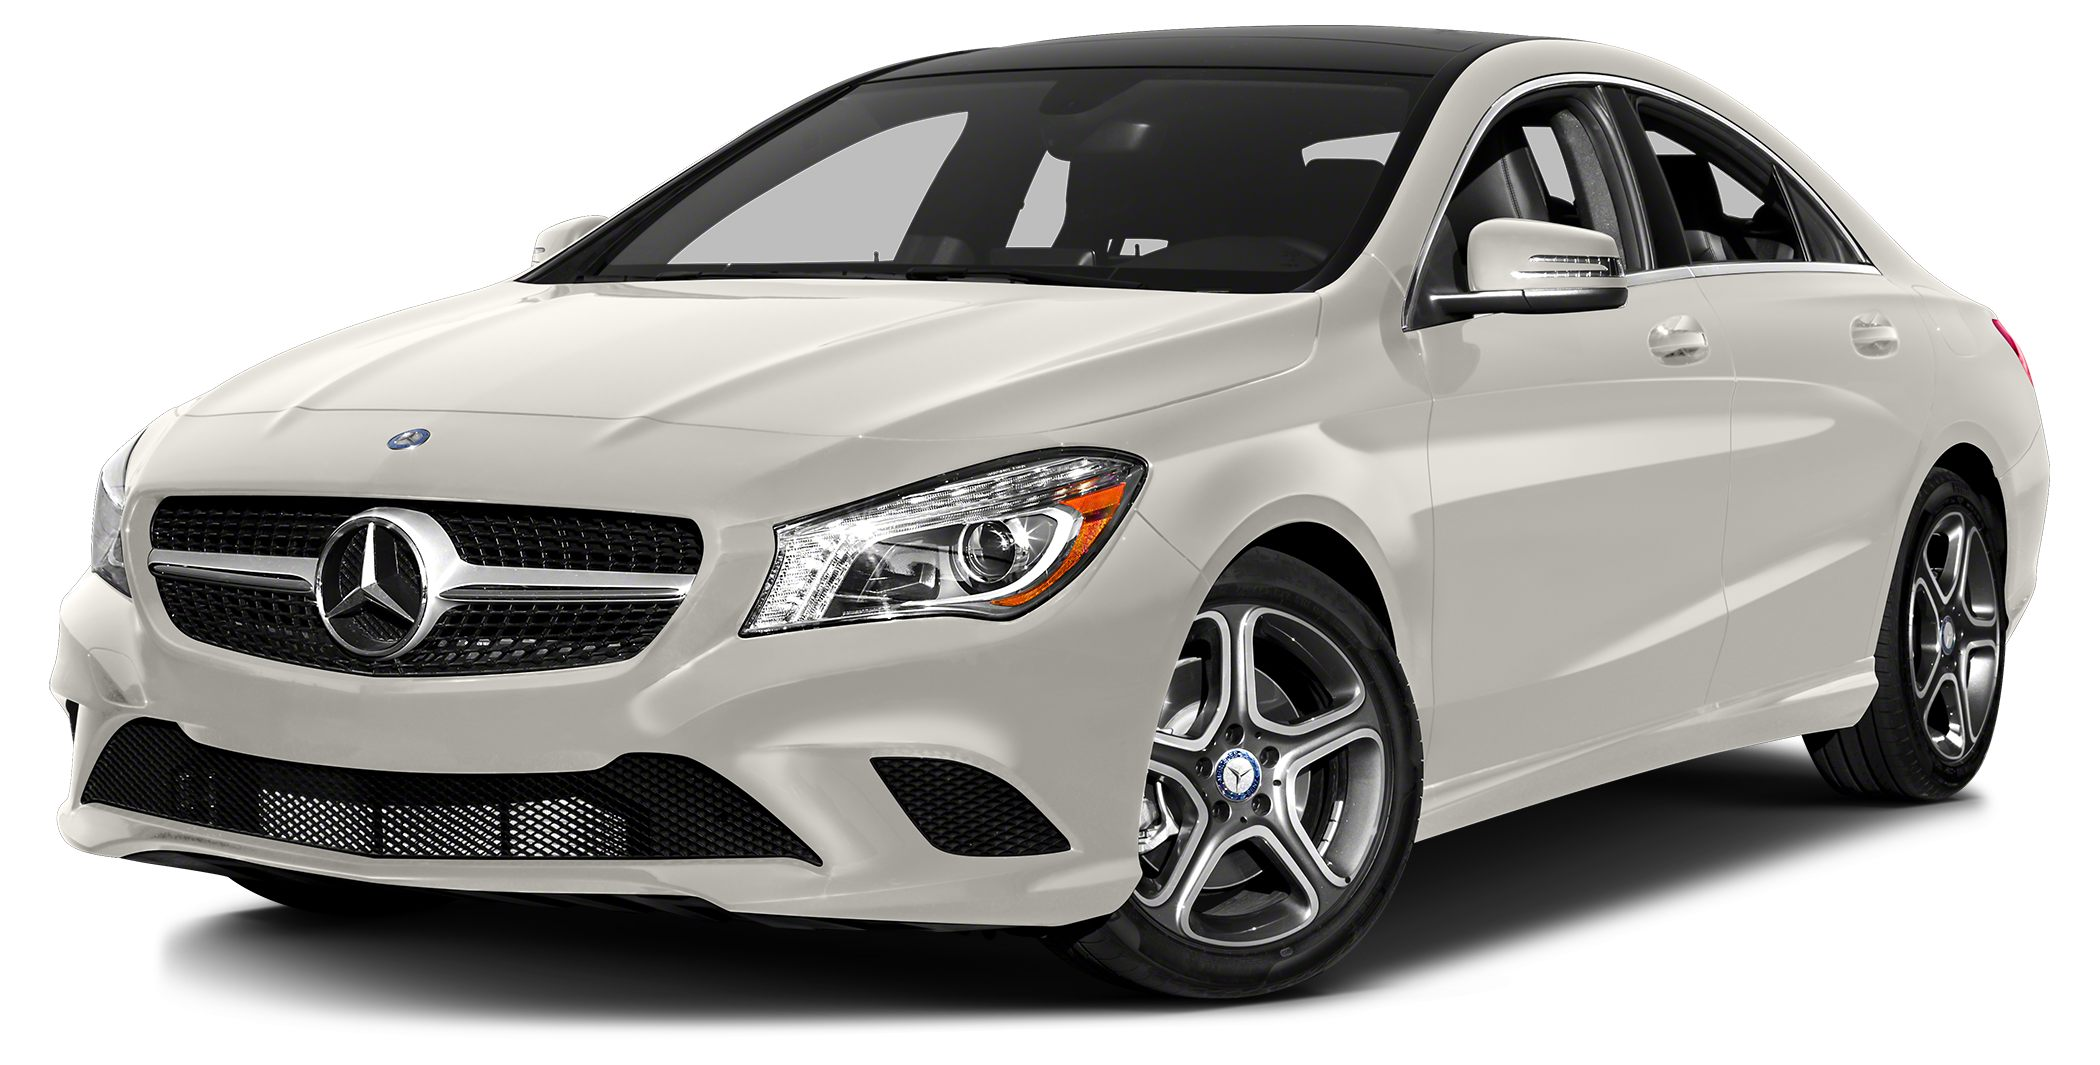 2014 MERCEDES CLA-Class CLA 250 4MATIC  WHEN IT COMES TO EXCELLENCE IN USED CAR SALESYOU KNOW